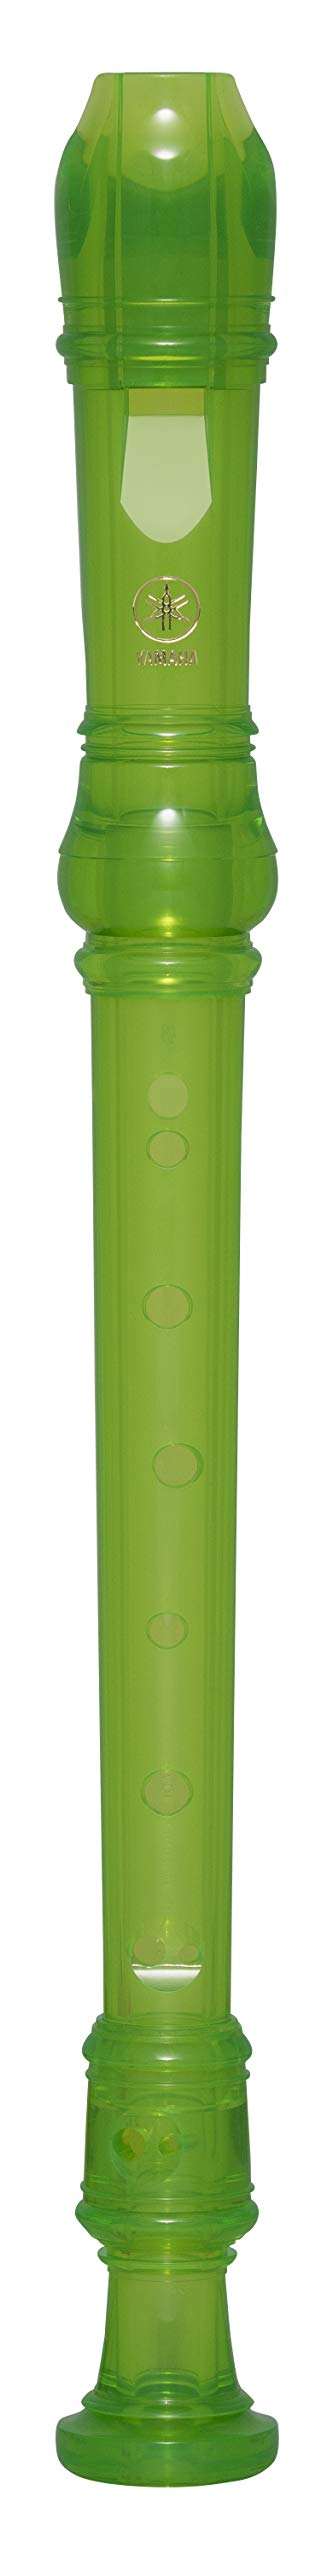 Yamaha YRS-20 3 Piece Soprano Recorder, Green product image